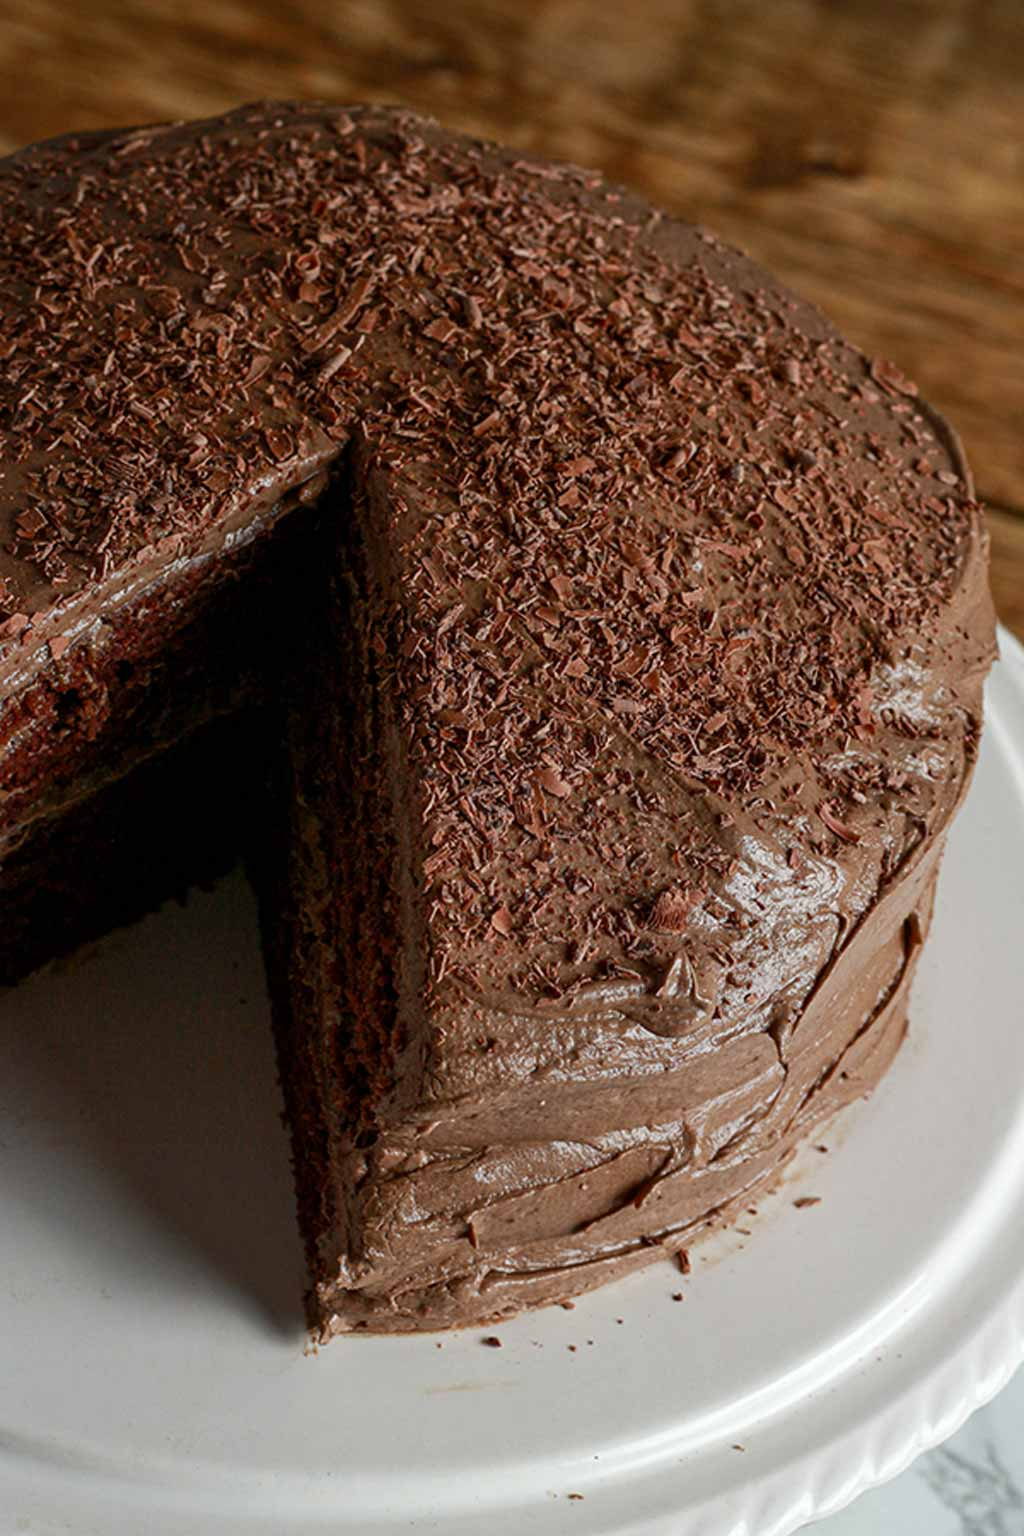 Vegan Chocolate Fudge Cake On A White Cake Stand With 1 Slice Missing